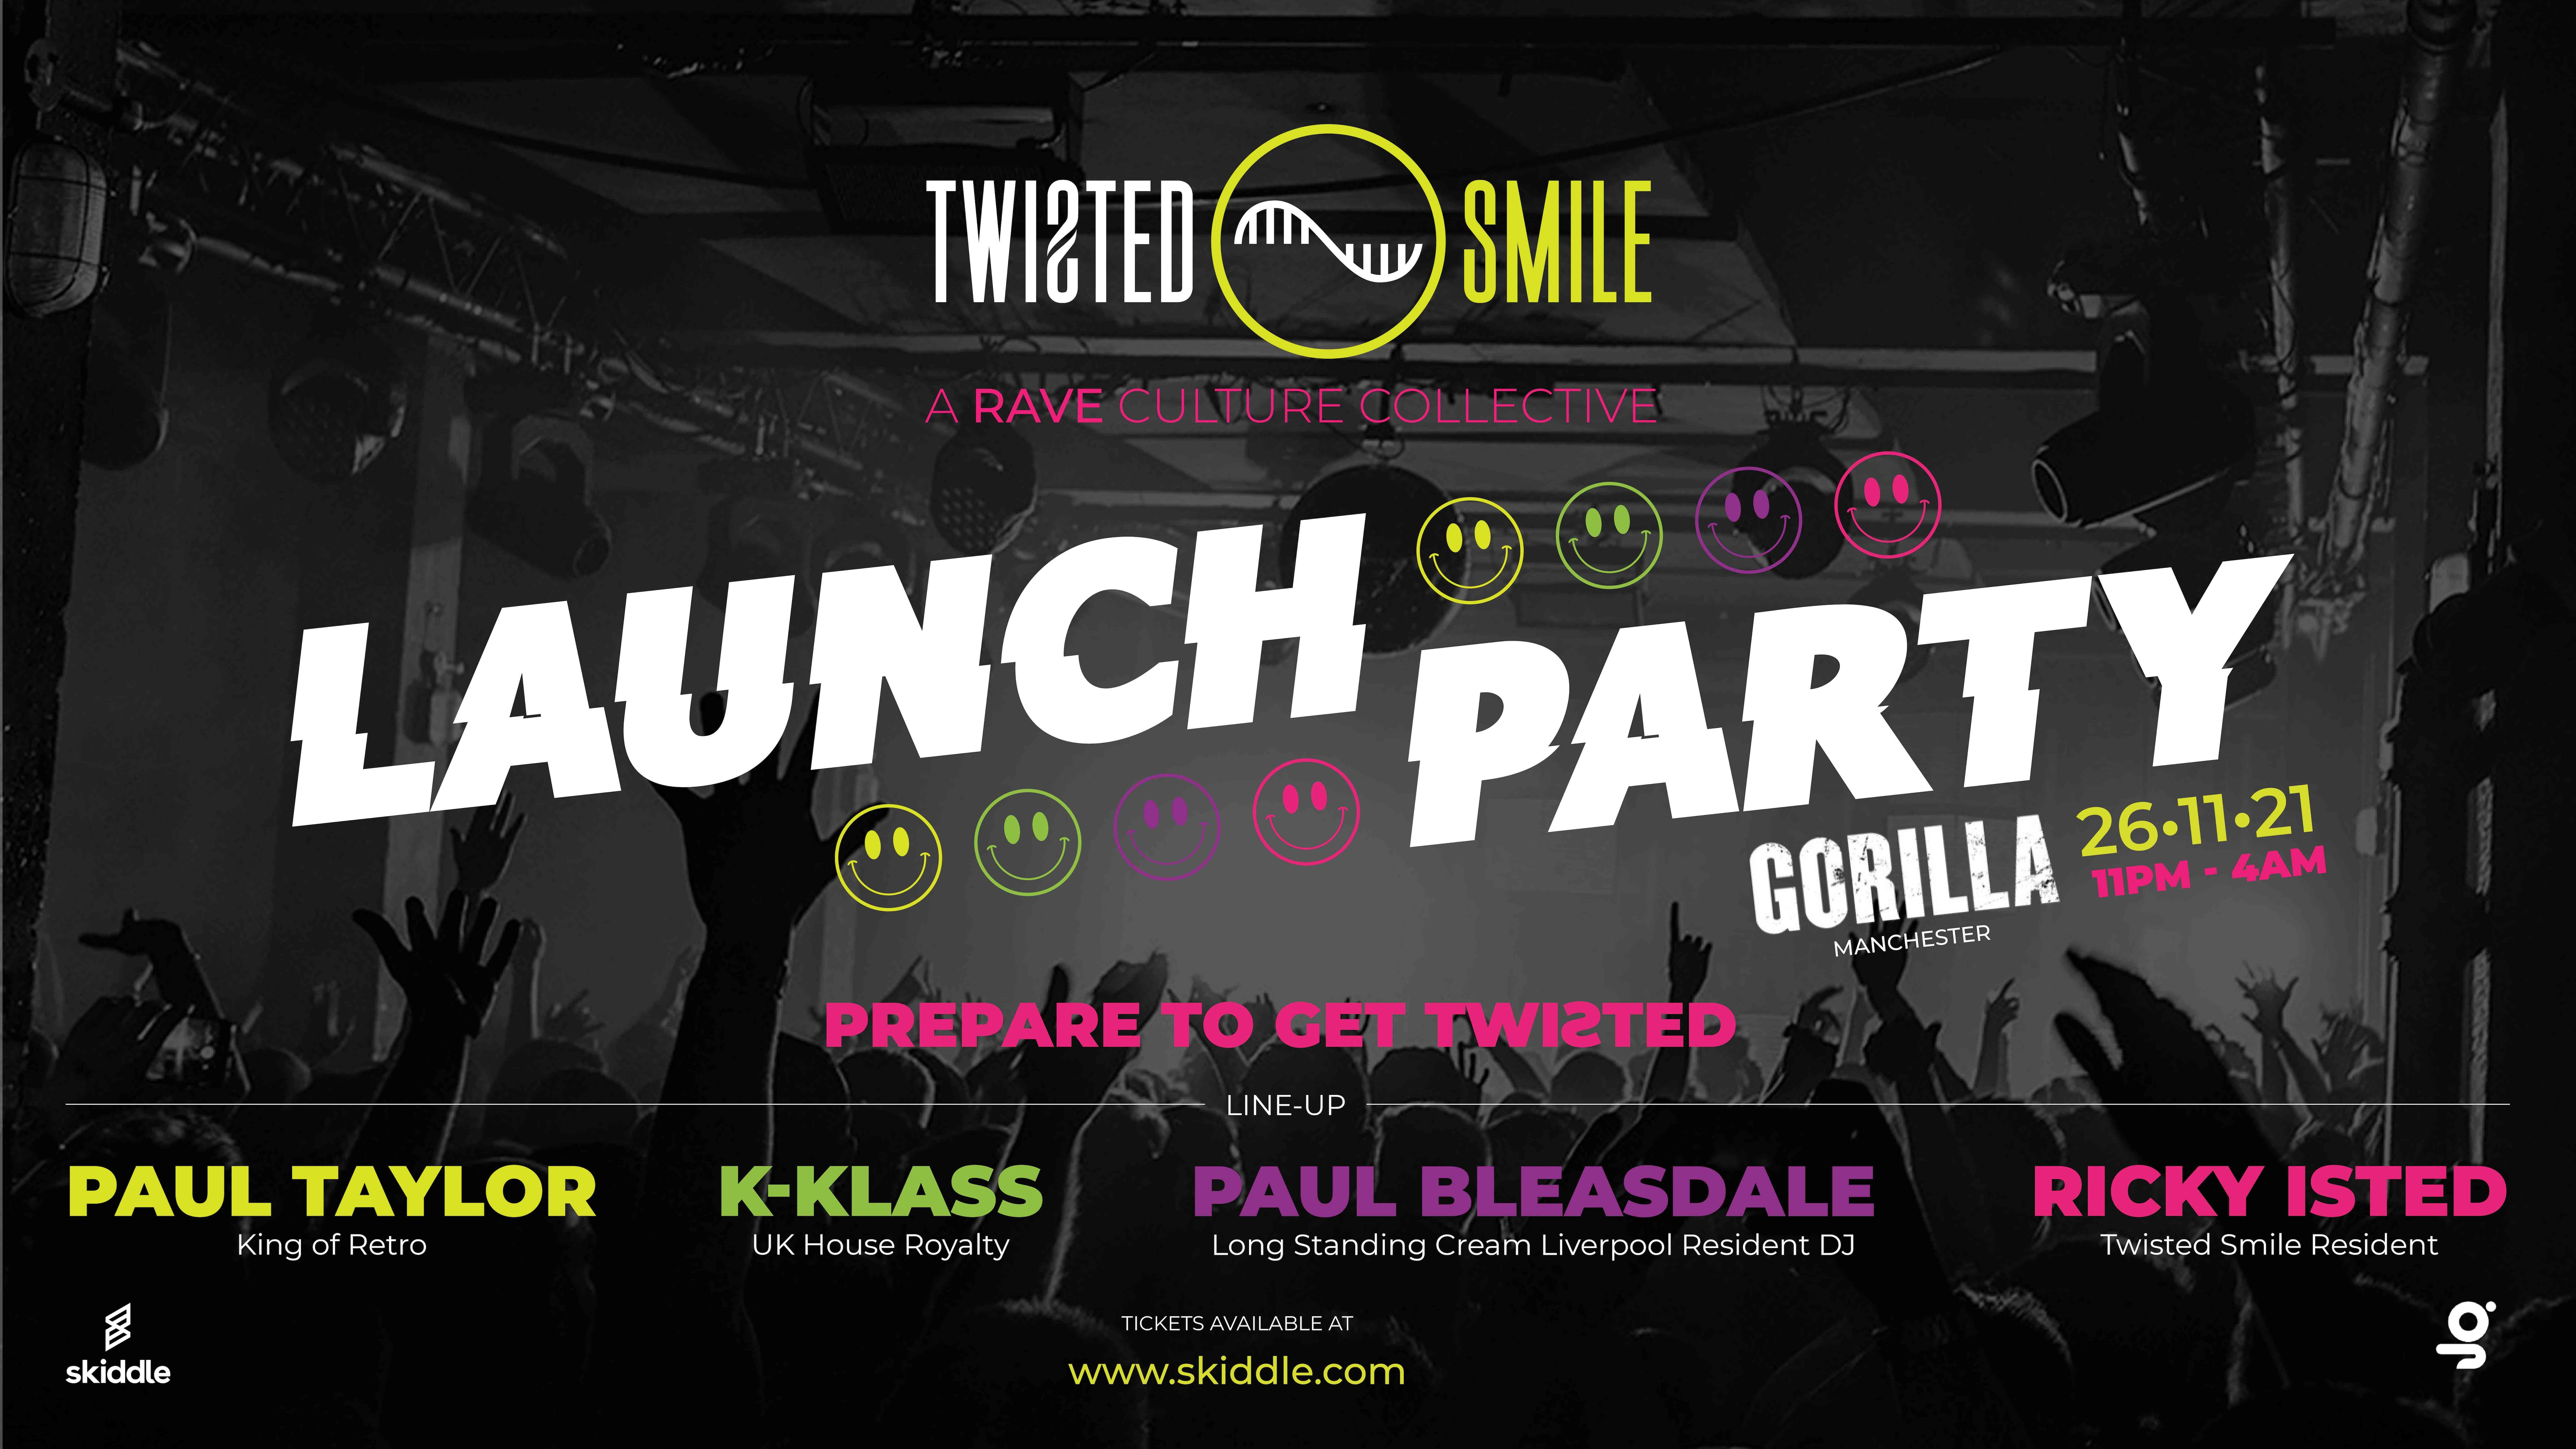 TWISTED SMILE LAUNCH PARTY